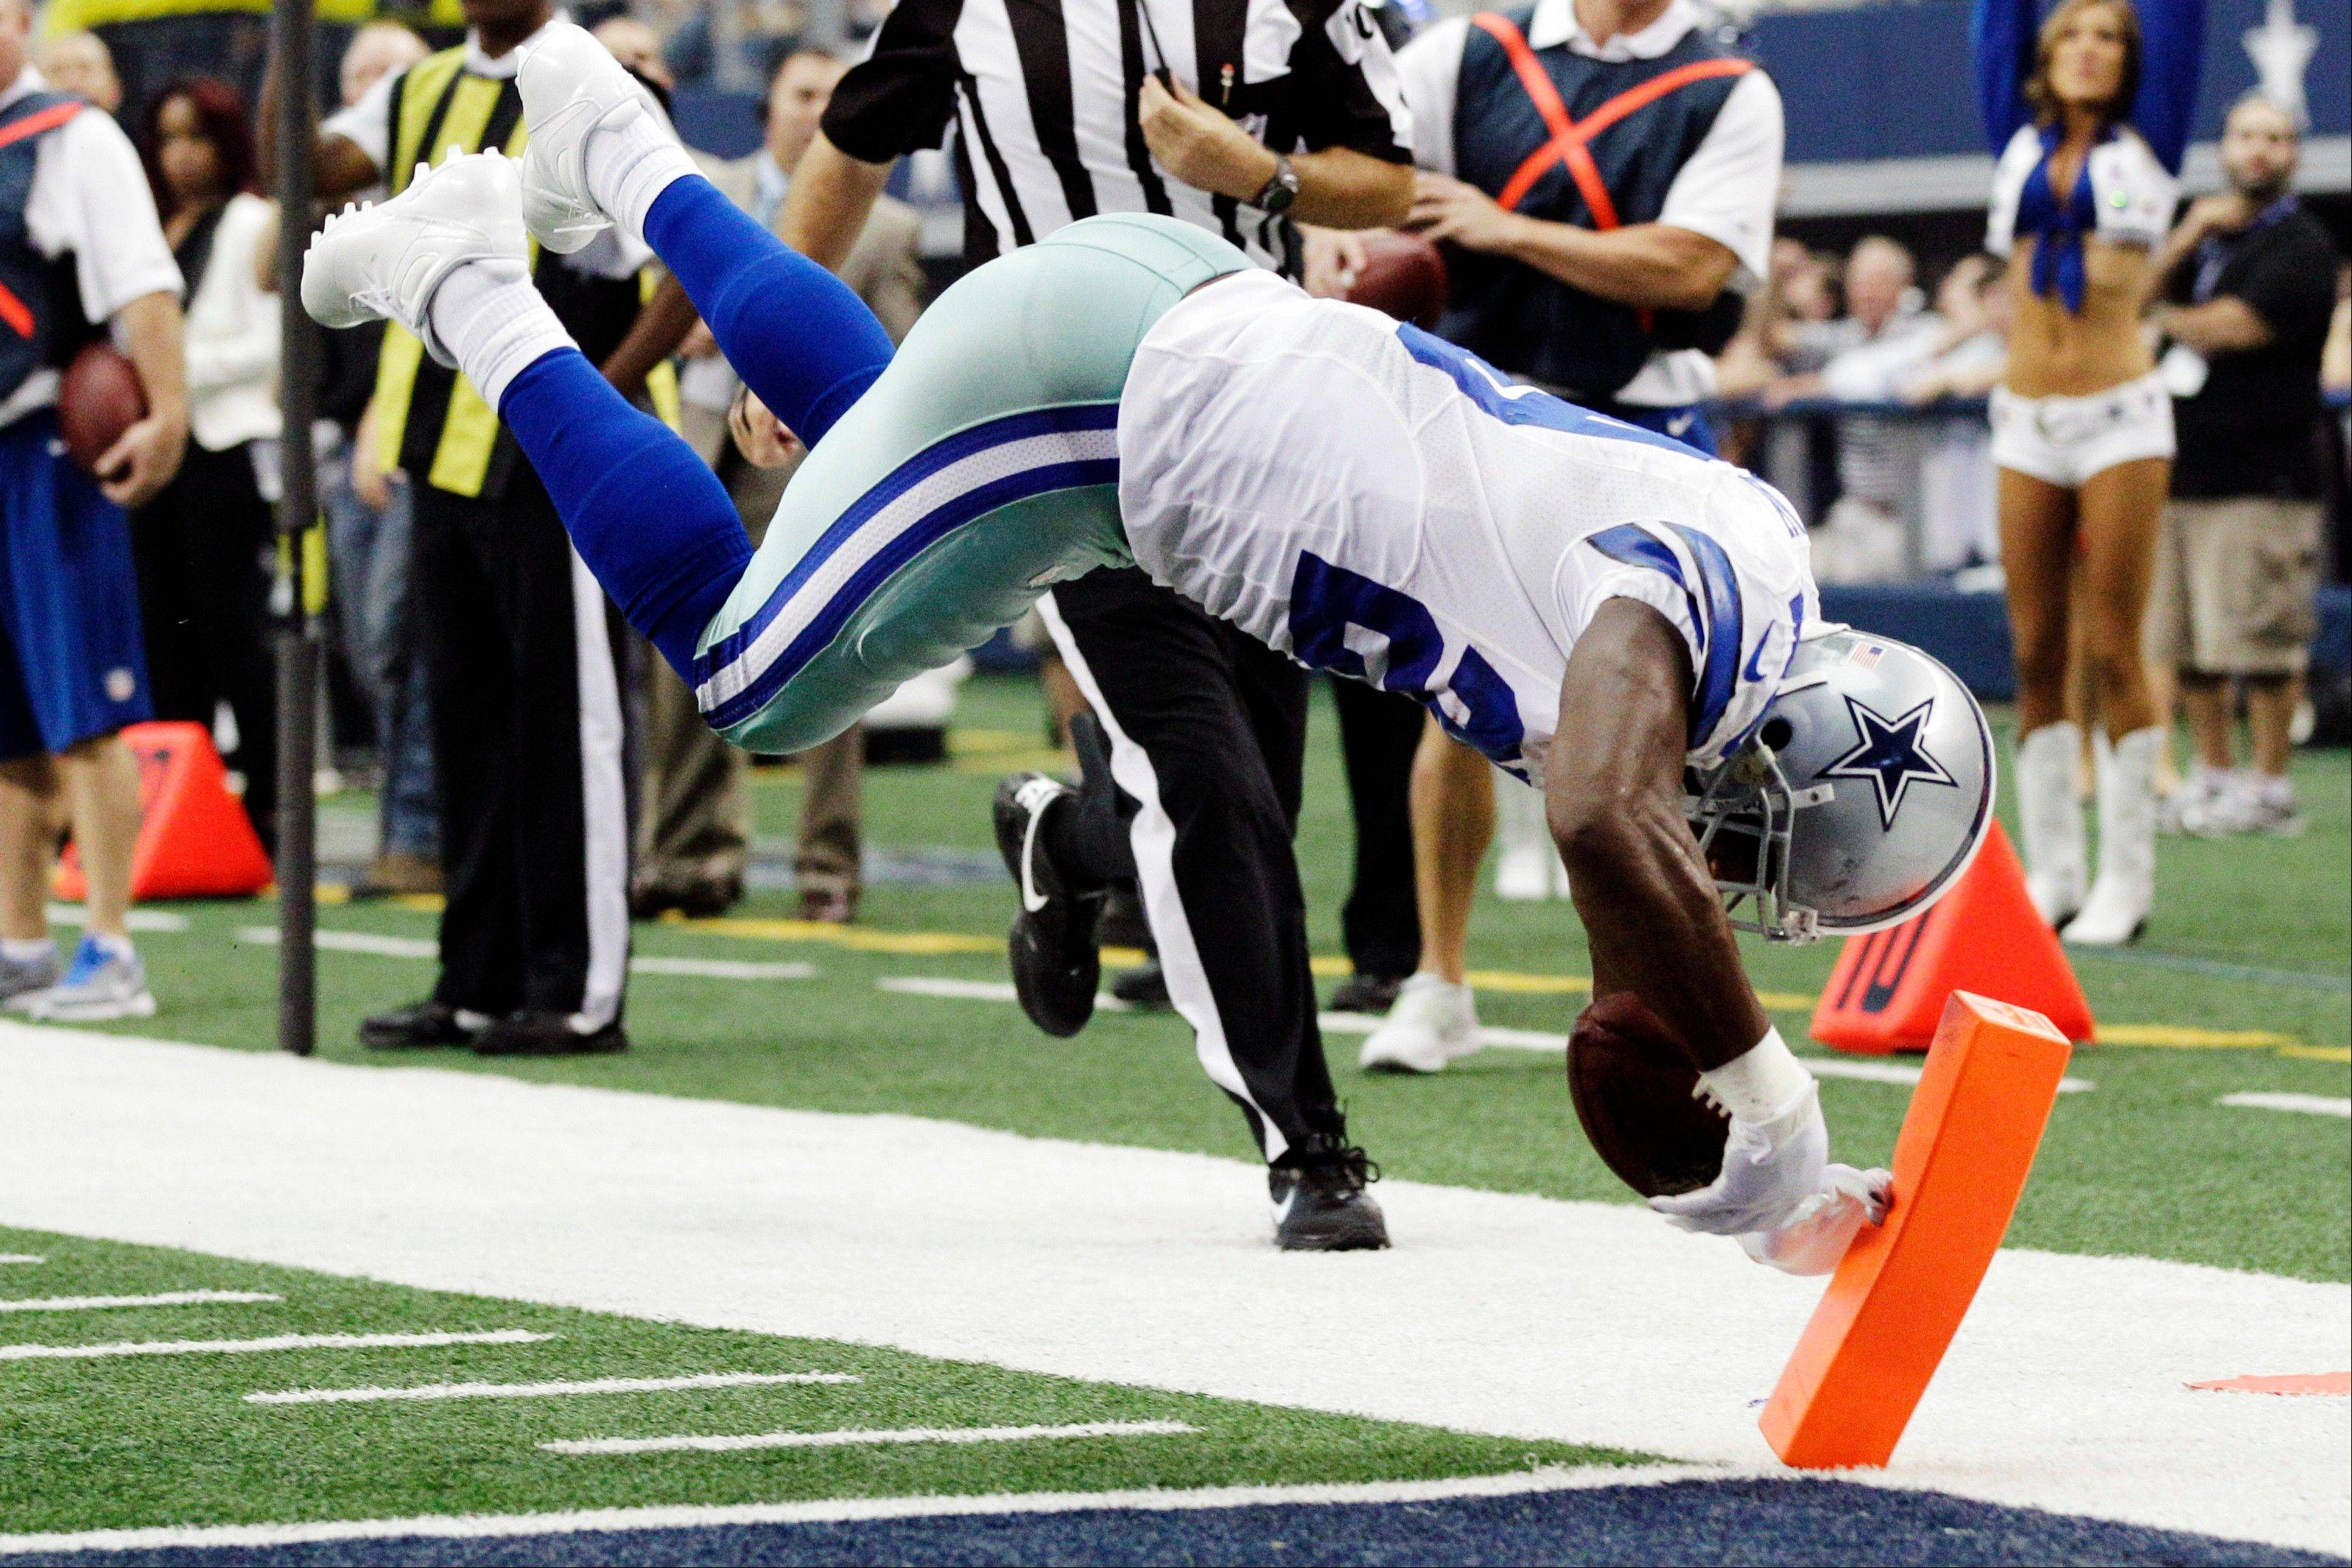 Dallas running back DeMarco Murray dives for a touchdown against the Tampa Bay Buccaneers during the first half Sunday in Arlington, Texas.